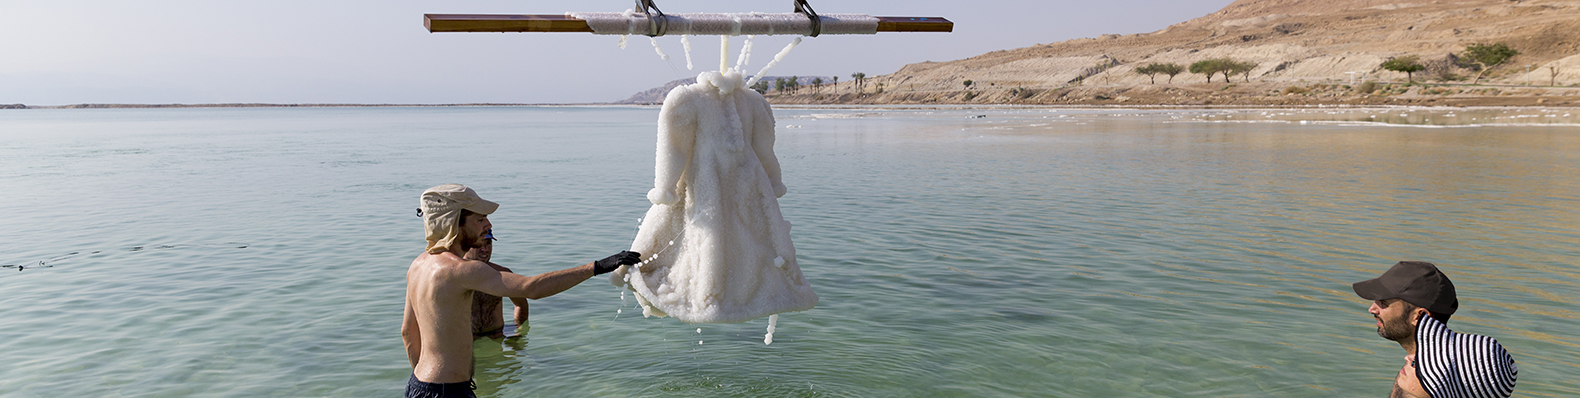 Dress submerged in the Dead Sea transforms into a glittering crystalline gown